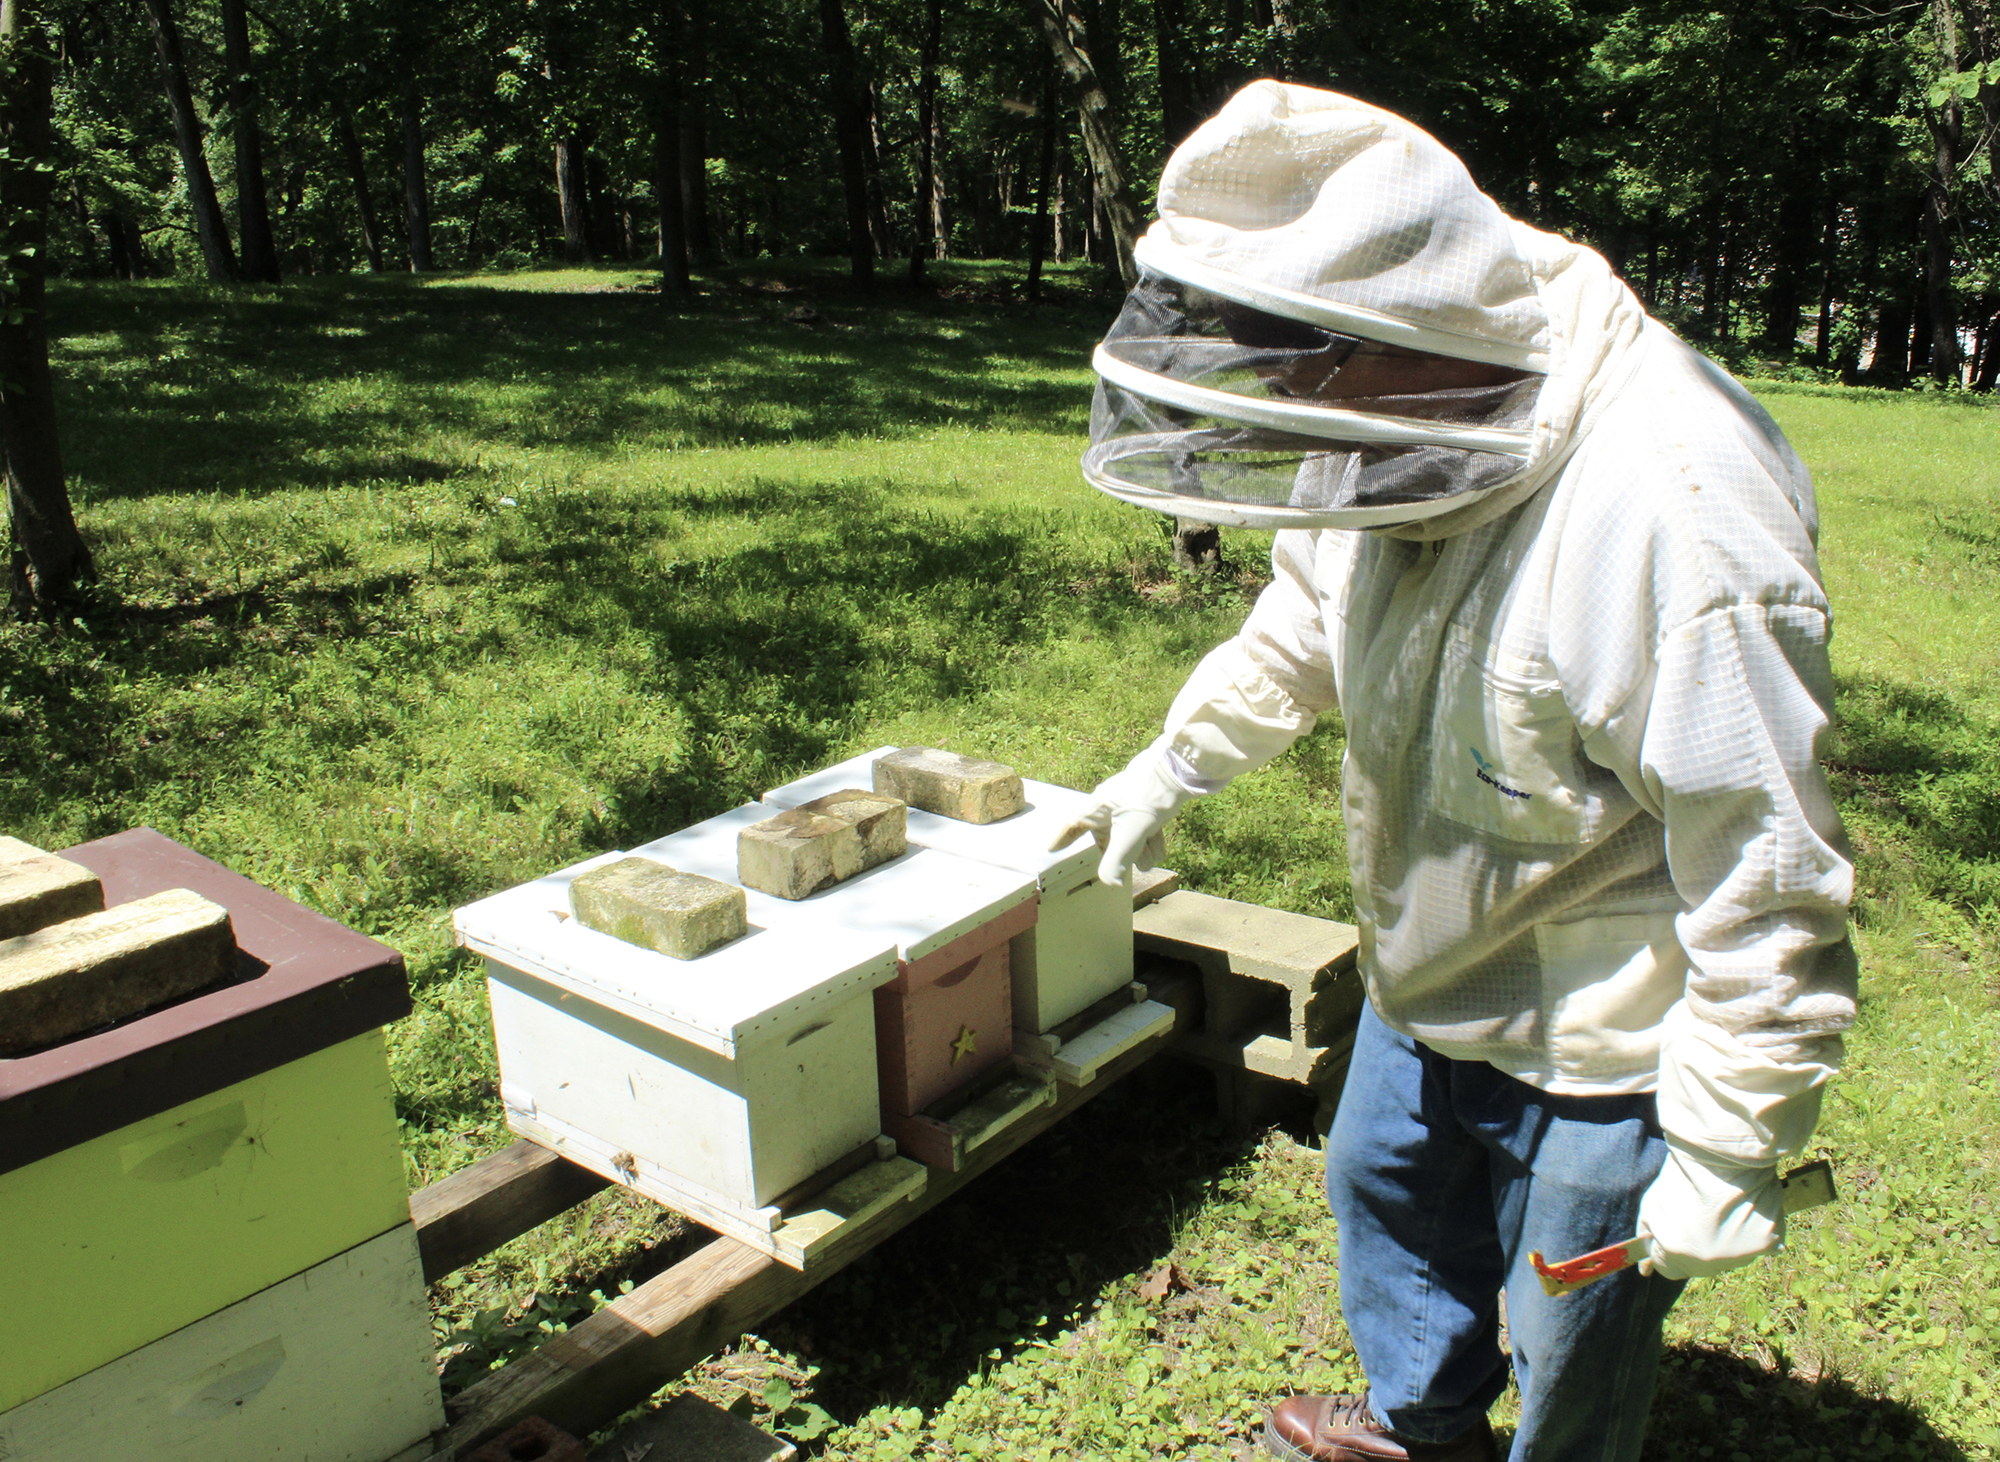 This is a photo of beekeeper John Suko and his bee hives.